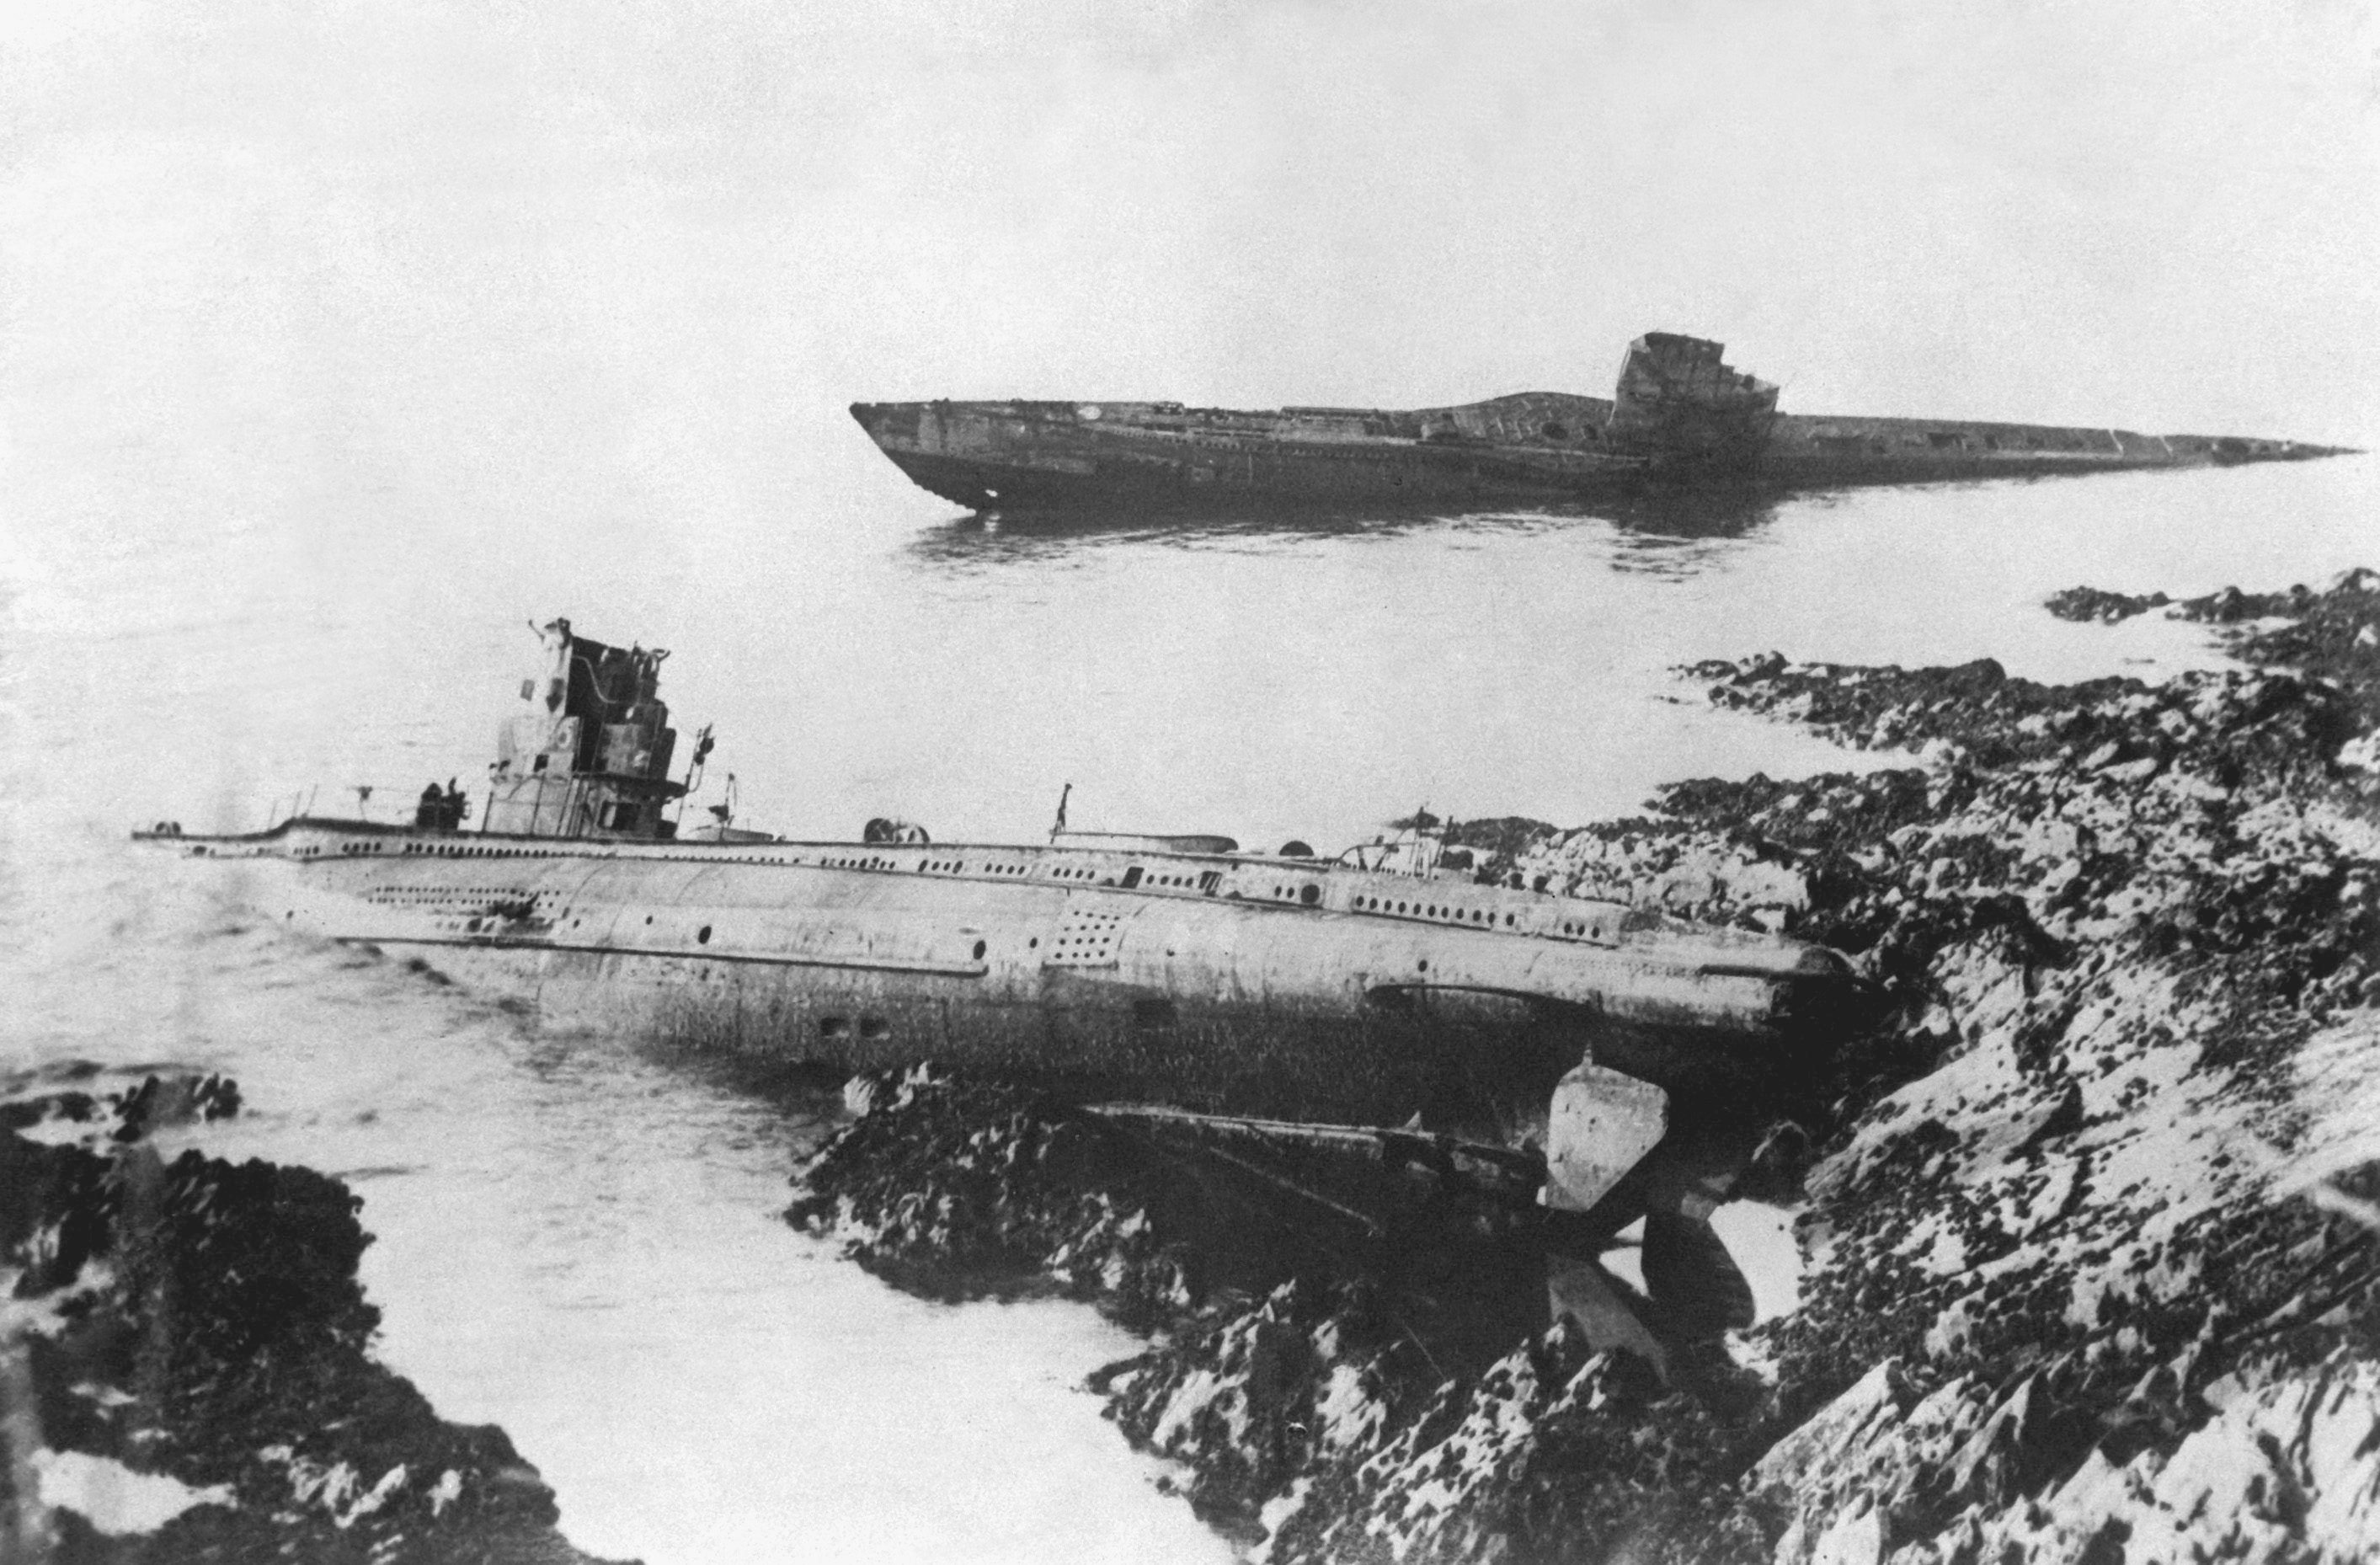 A most remarkable post-war incident was the washing up on the rocks at Falmouth, England, of two German U-boats. They were cast up but a few feet apart; both had been sunk during the war. 1921. INP. (OWI) Exact Date Shot Unknown NARA FILE #: 208-PR-10K-1 WAR & CONFLICT BOOK #: 709